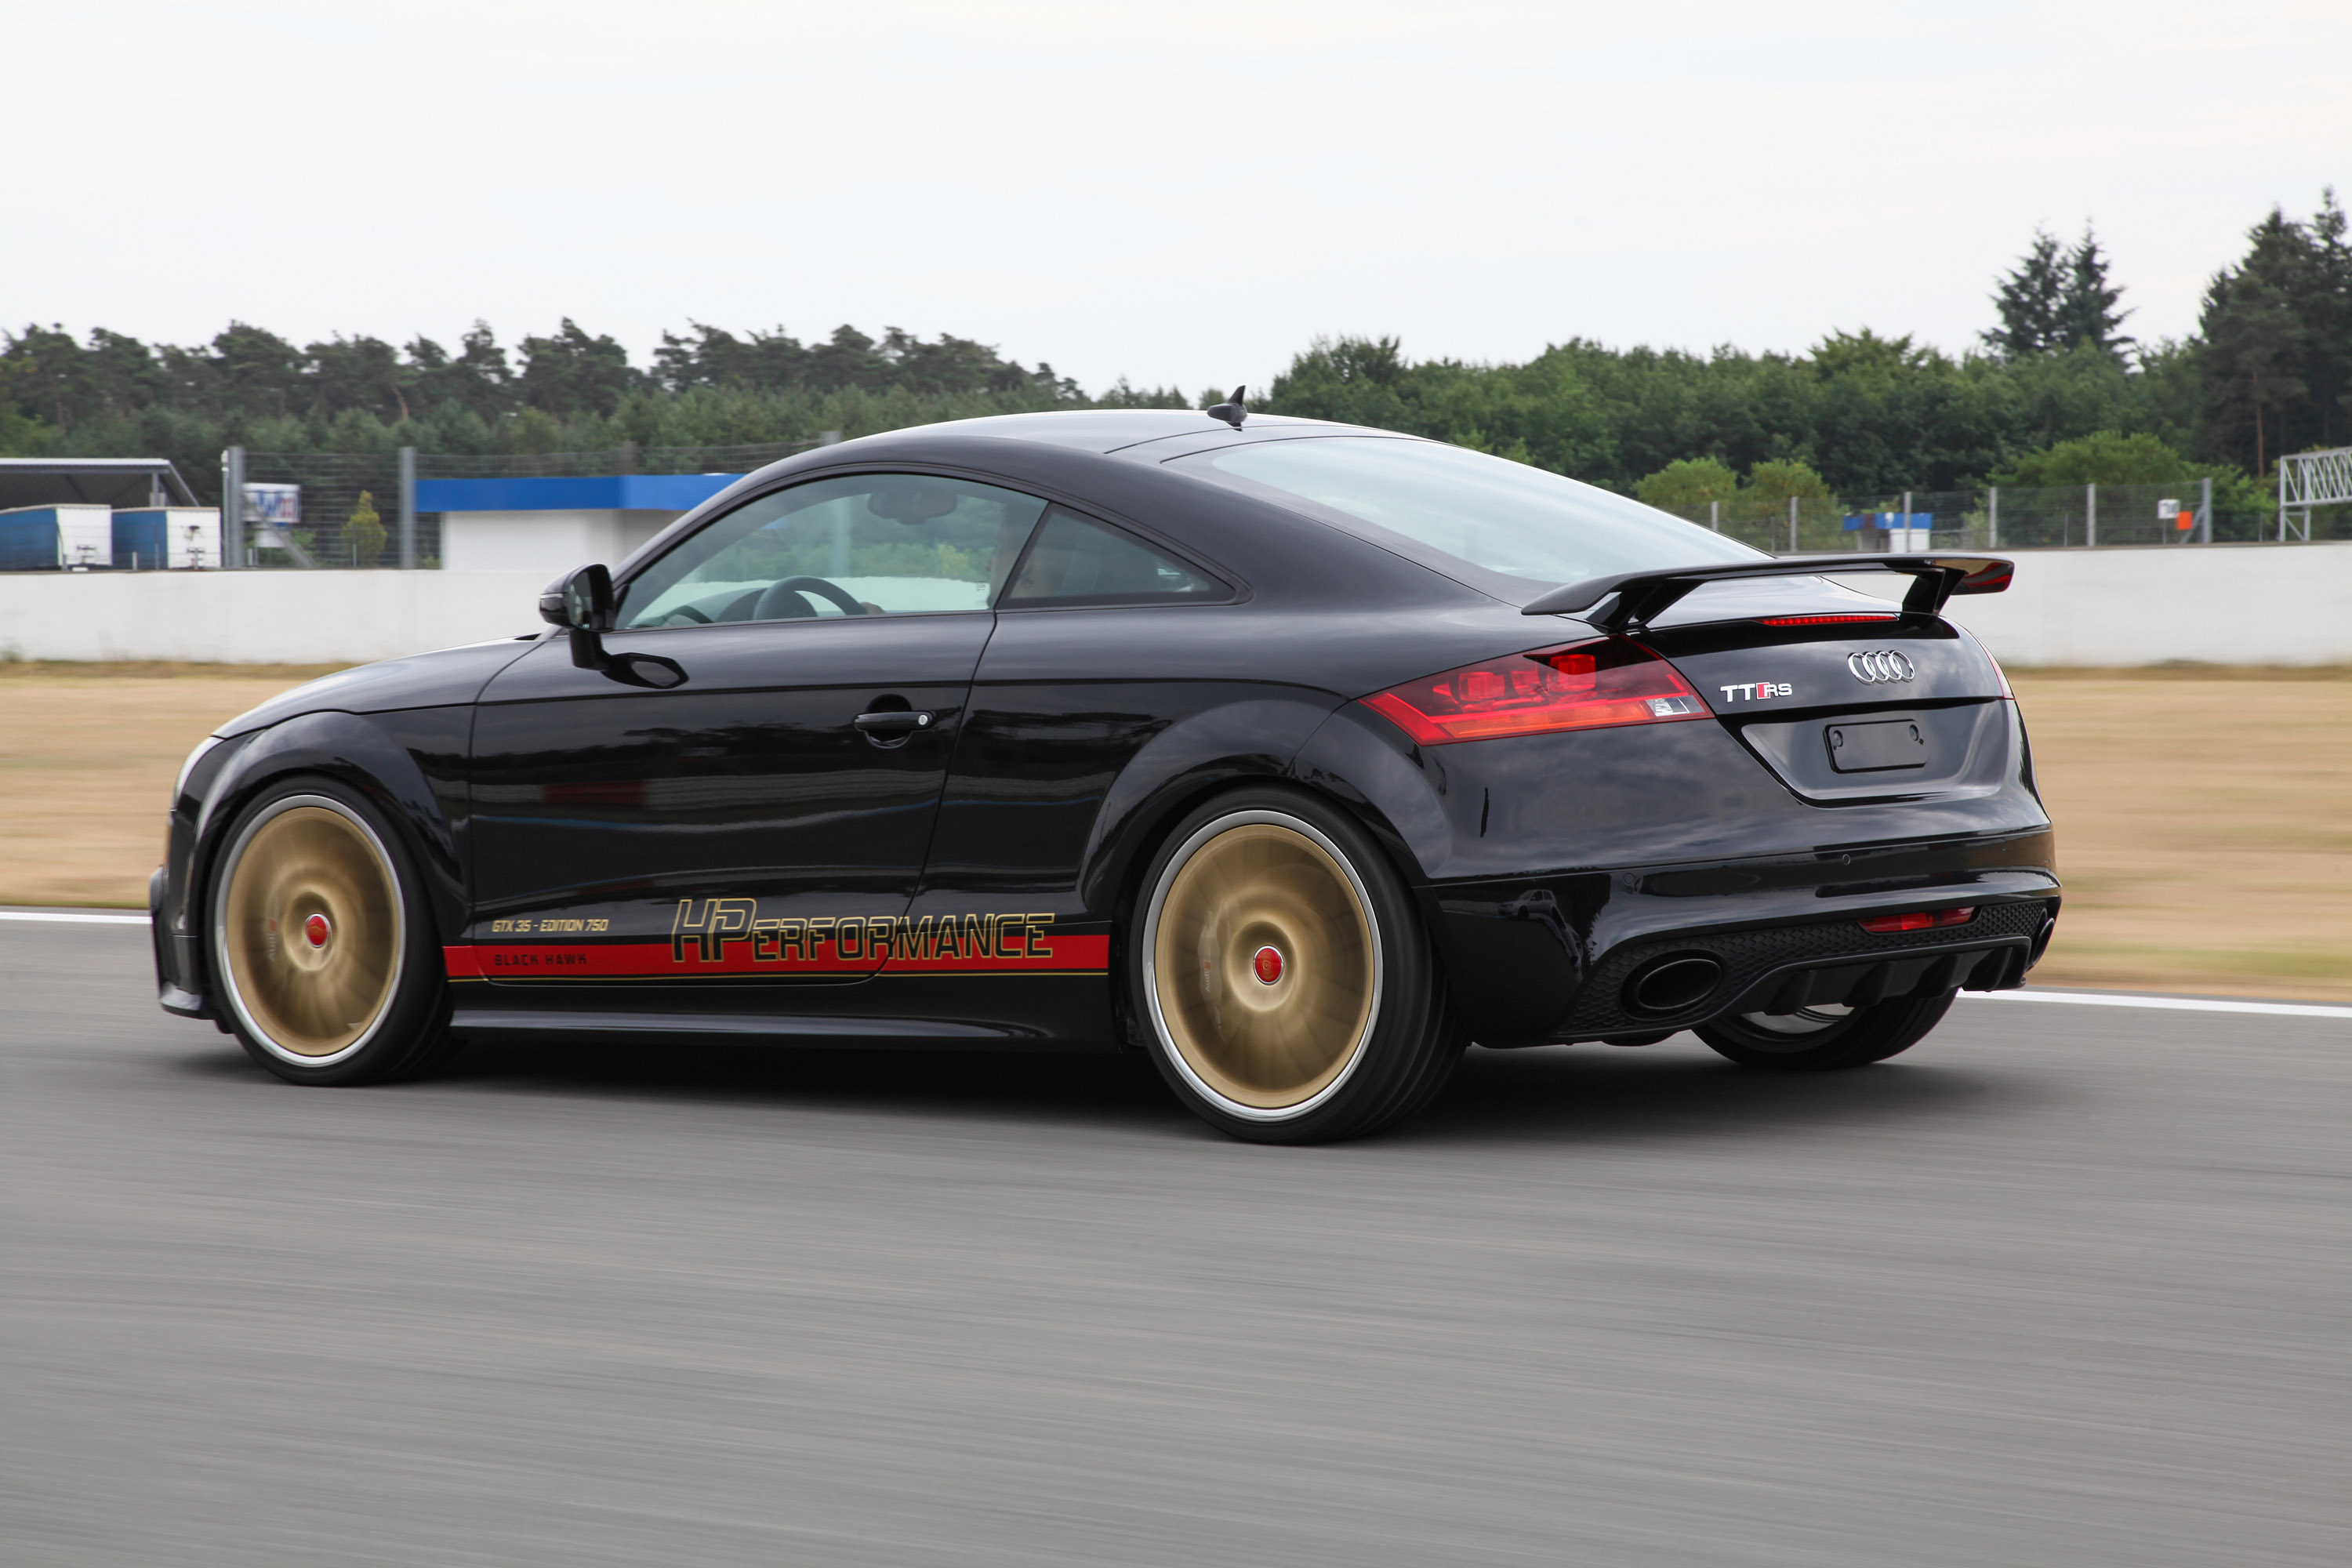 Meet The Strongest Audi Tt Rs On The Planet